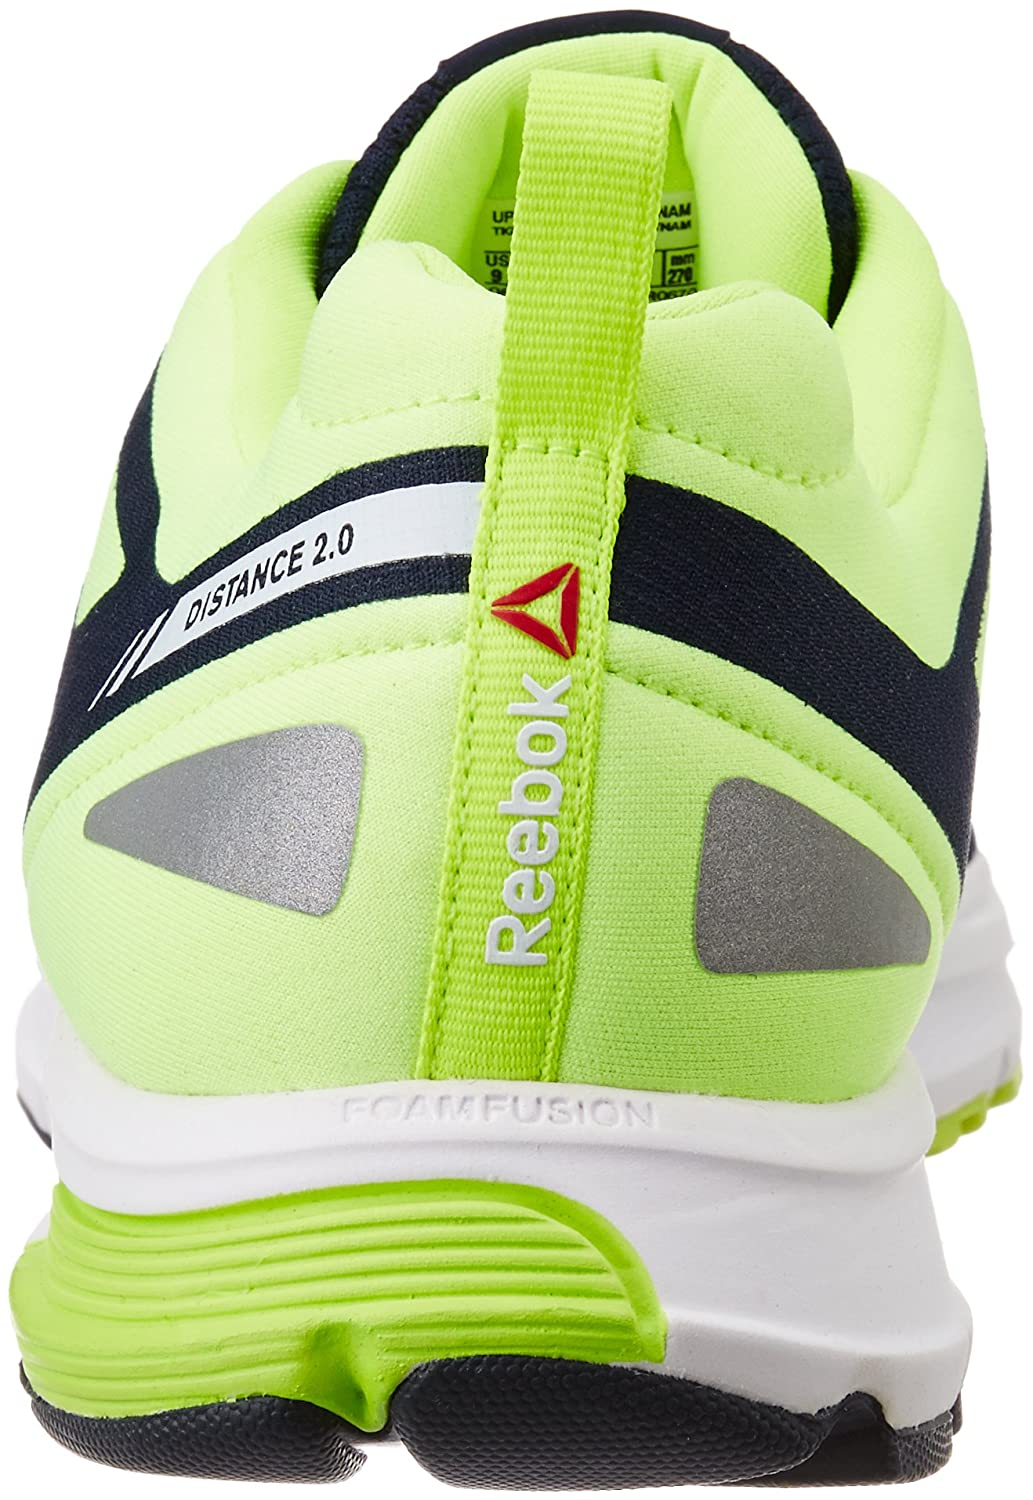 f2b55883ff1ad8 Reebok Men s One Distance 2.0 Running Shoes  Buy Online at Low Prices in  India - Amazon.in